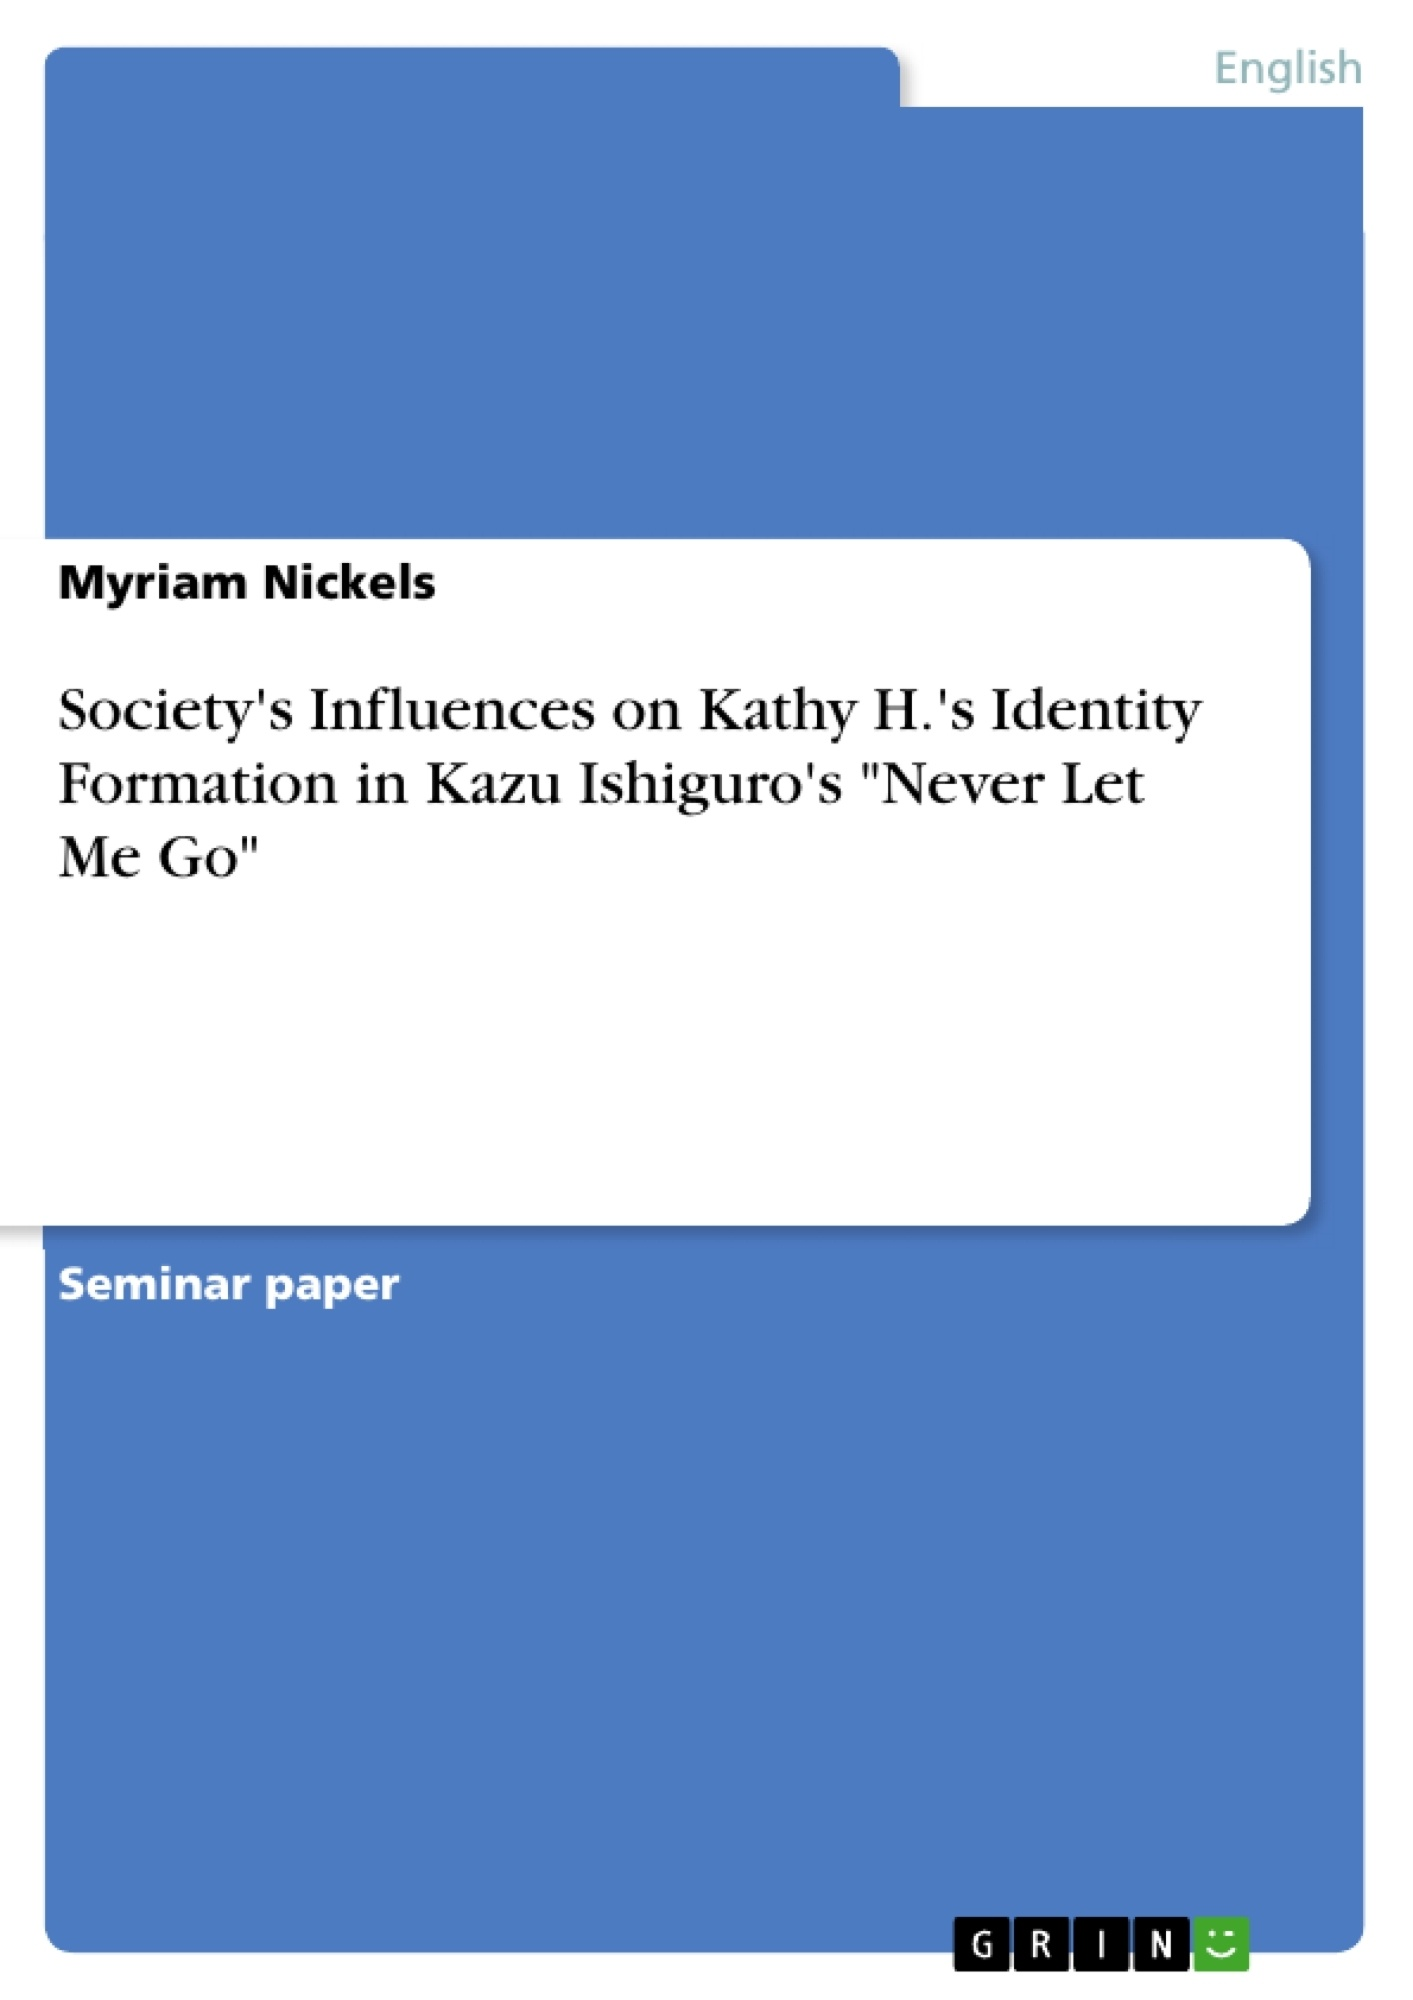 """Title: Society's Influences on Kathy H.'s Identity Formation in Kazu Ishiguro's """"Never Let Me Go"""""""